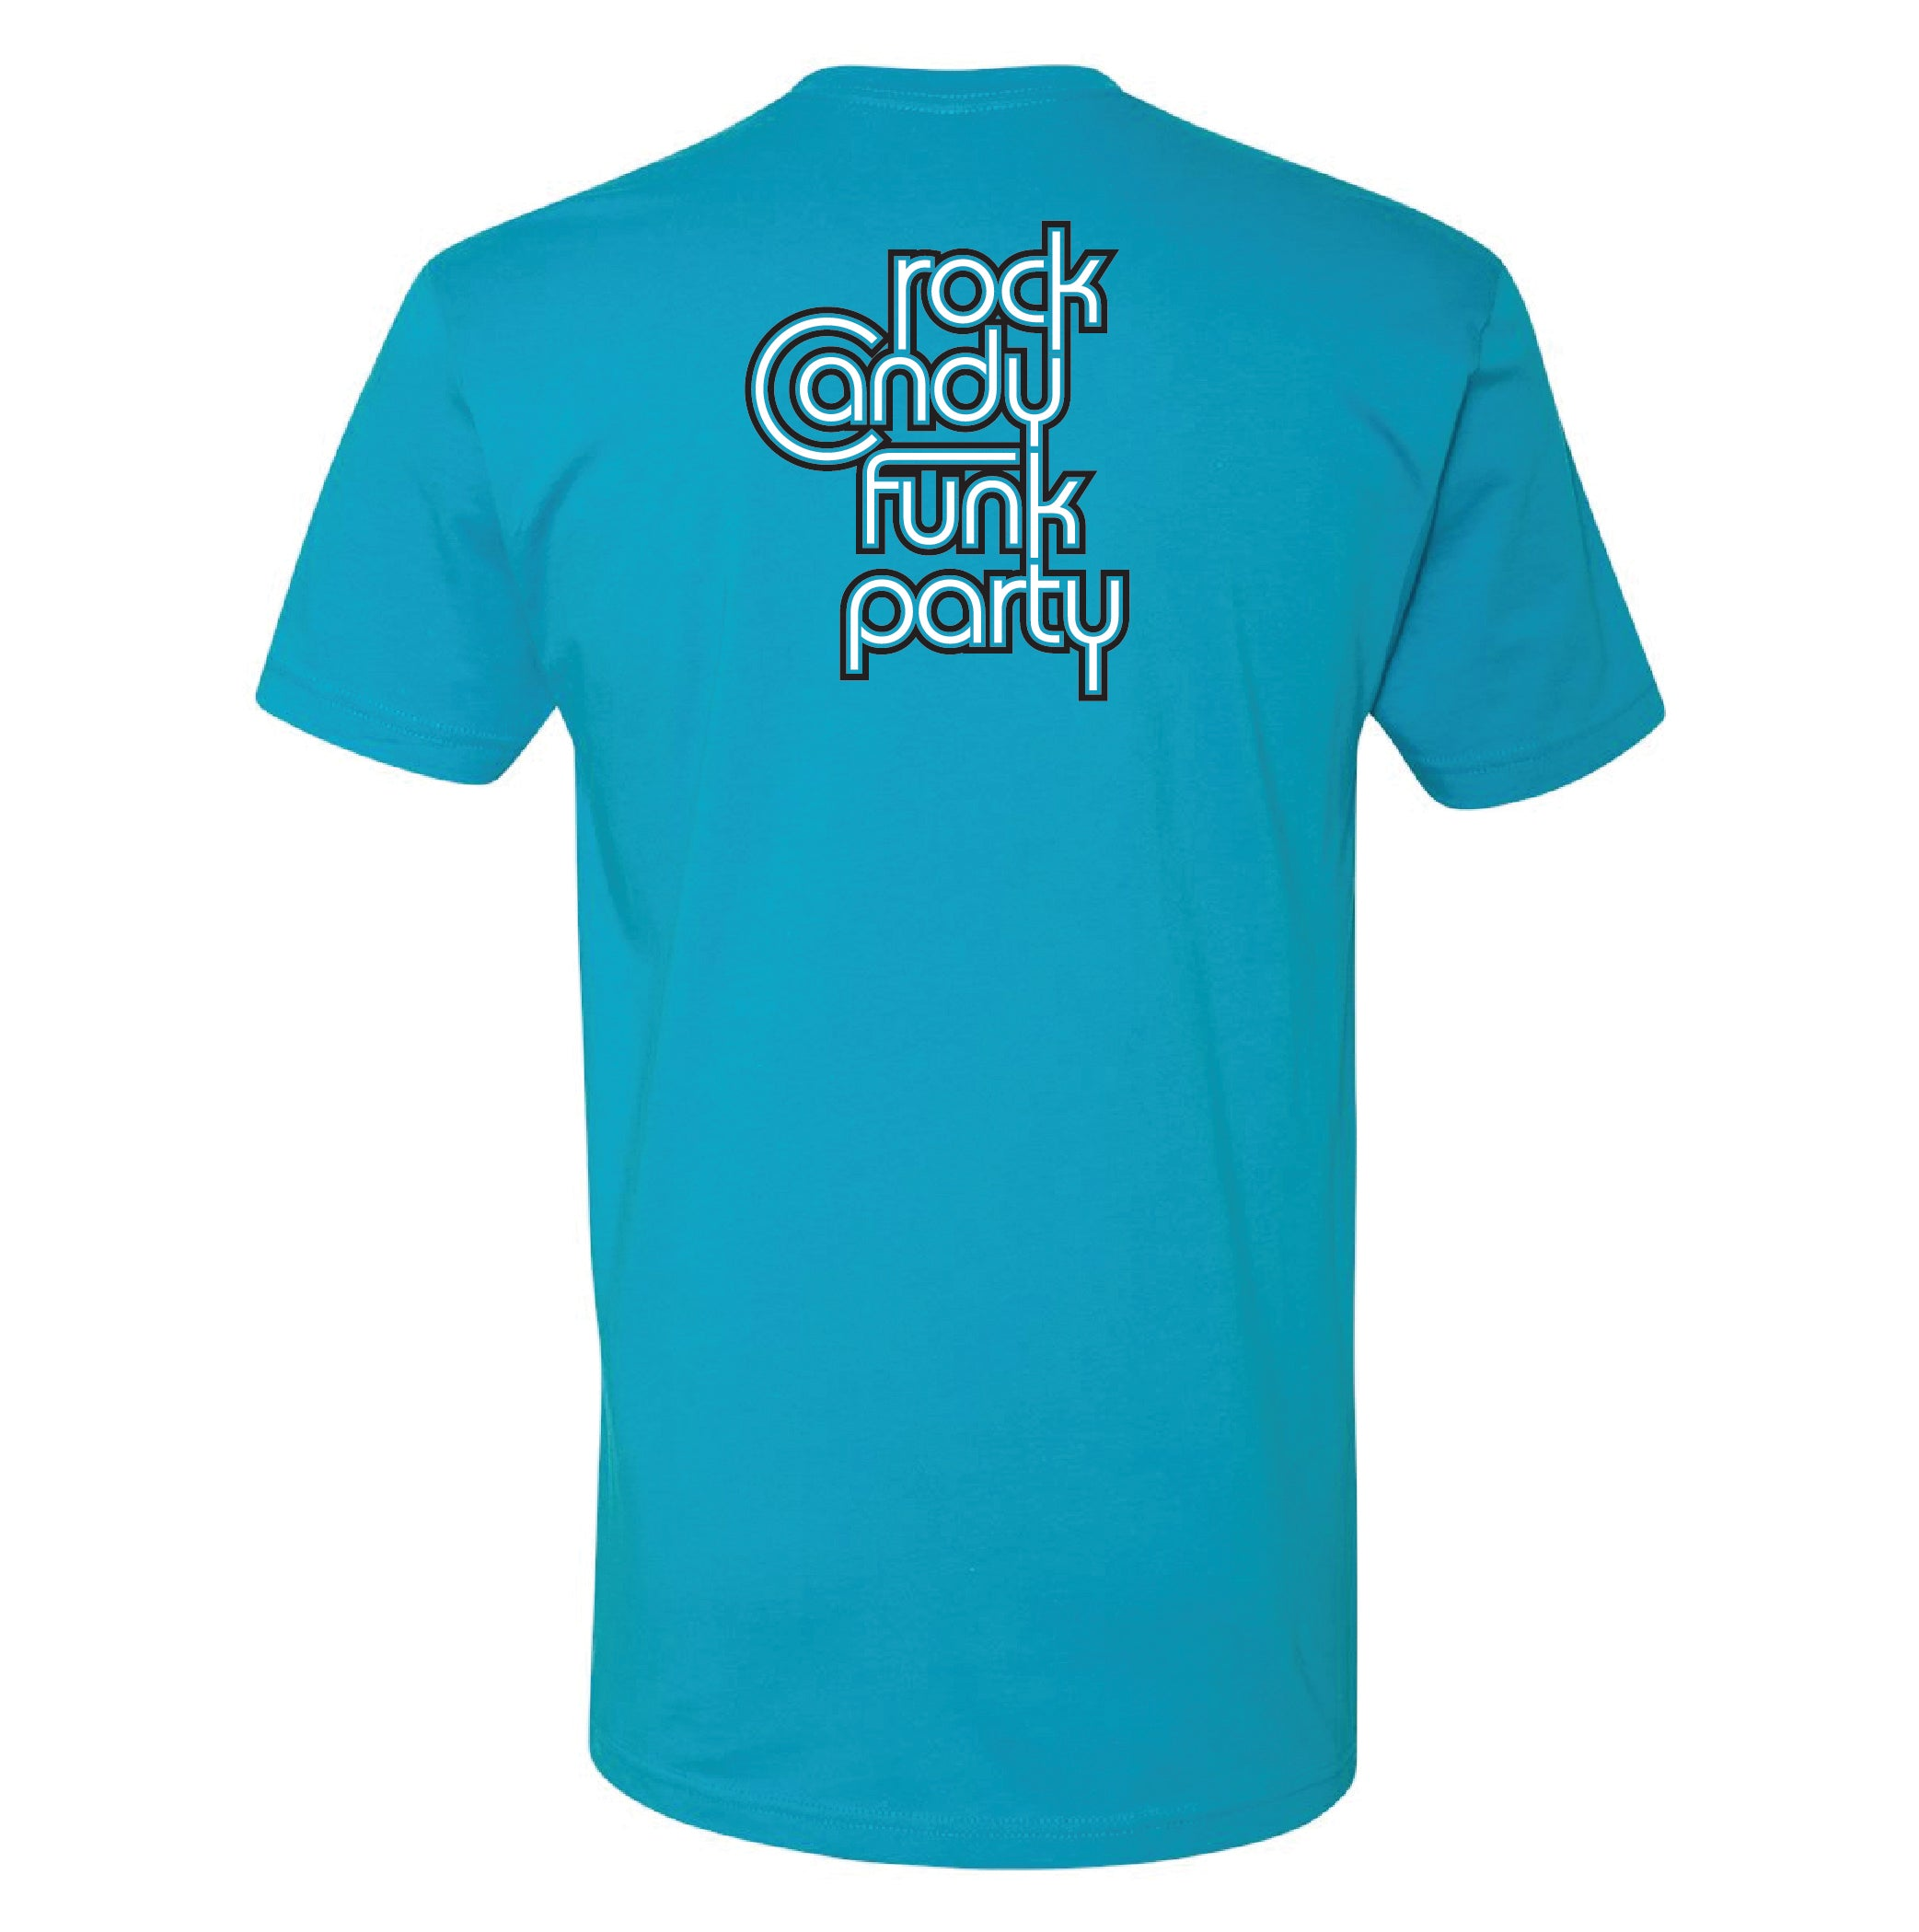 Rock Candy Funk Party T-Shirt (Unisex) - Blue